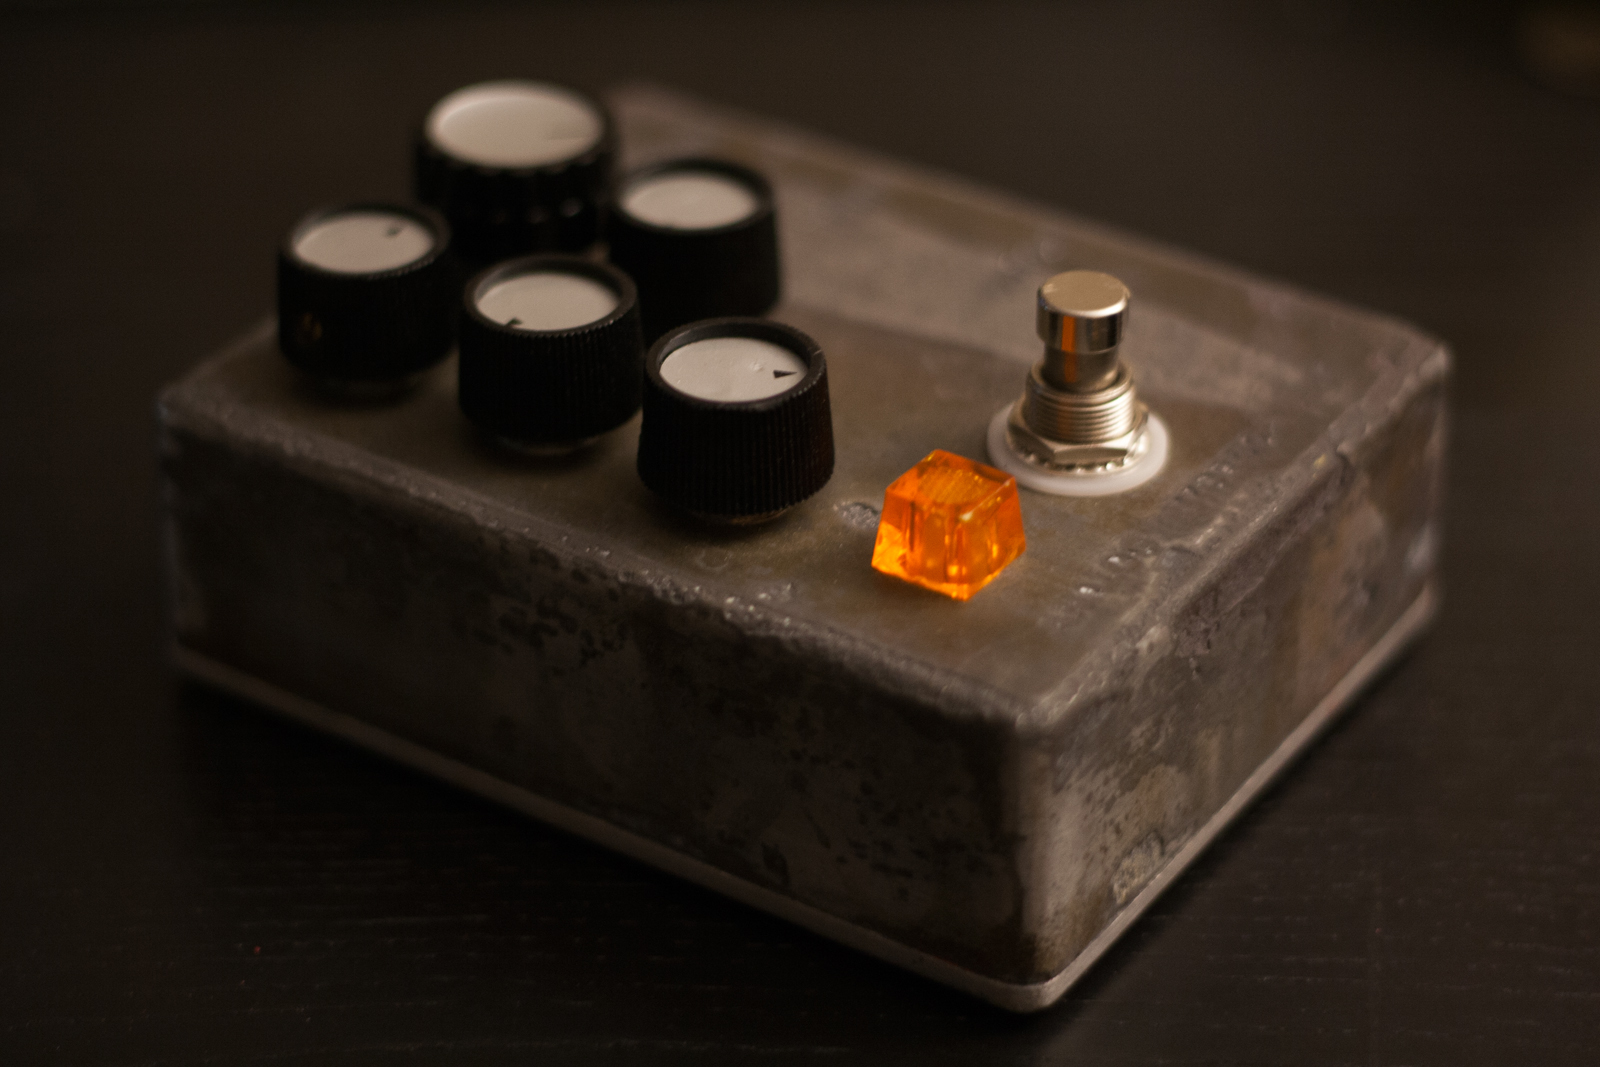 Pedals Electroblog Integrated Circuit 4558 Dual Opamp Antique Electronic Supply This Was An Excellent Build That Really Surprised Me I Didnt Expect To Enjoy One As Much Did And Im Going Borrow Ideas From In The